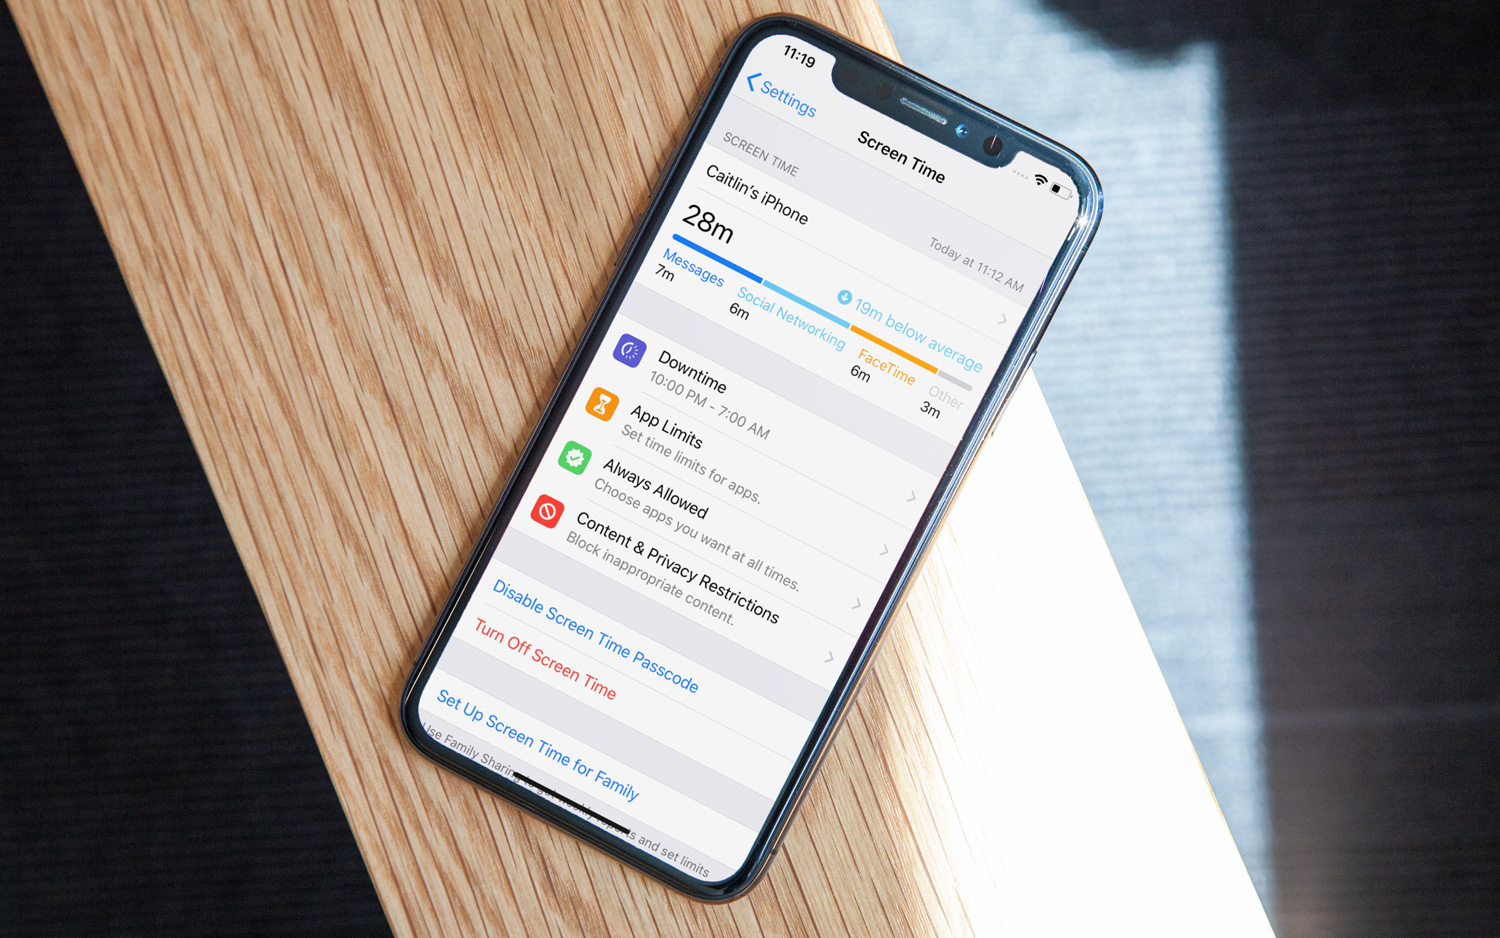 iOS 12 Complete Guide: Tips, Tricks and How-Tos for Your iPhone